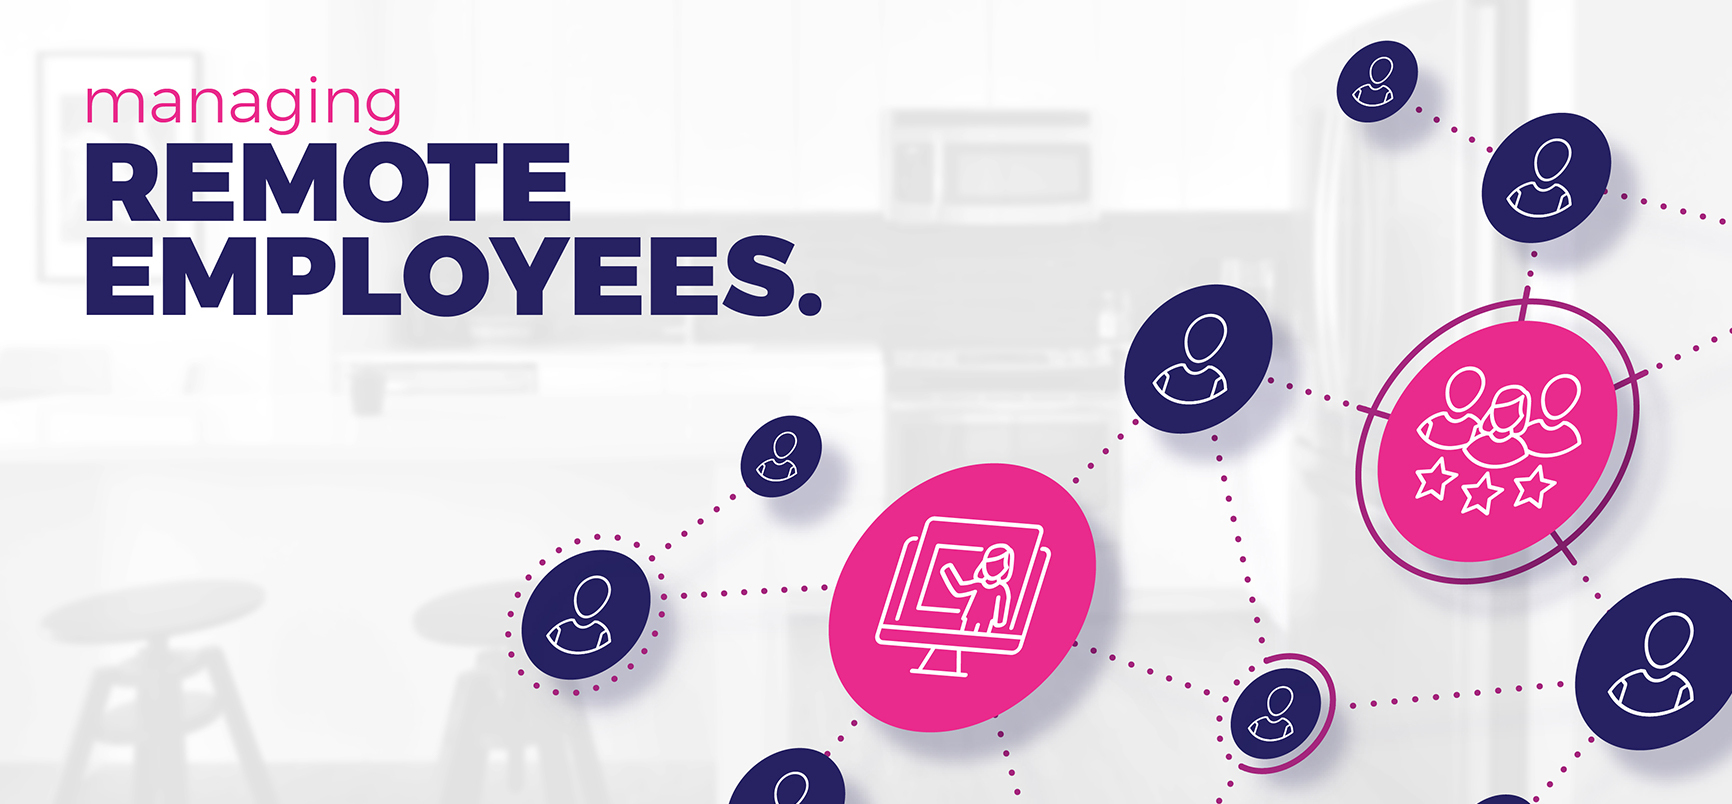 Leverage Your LMS to Simplify Managing Remote Employees